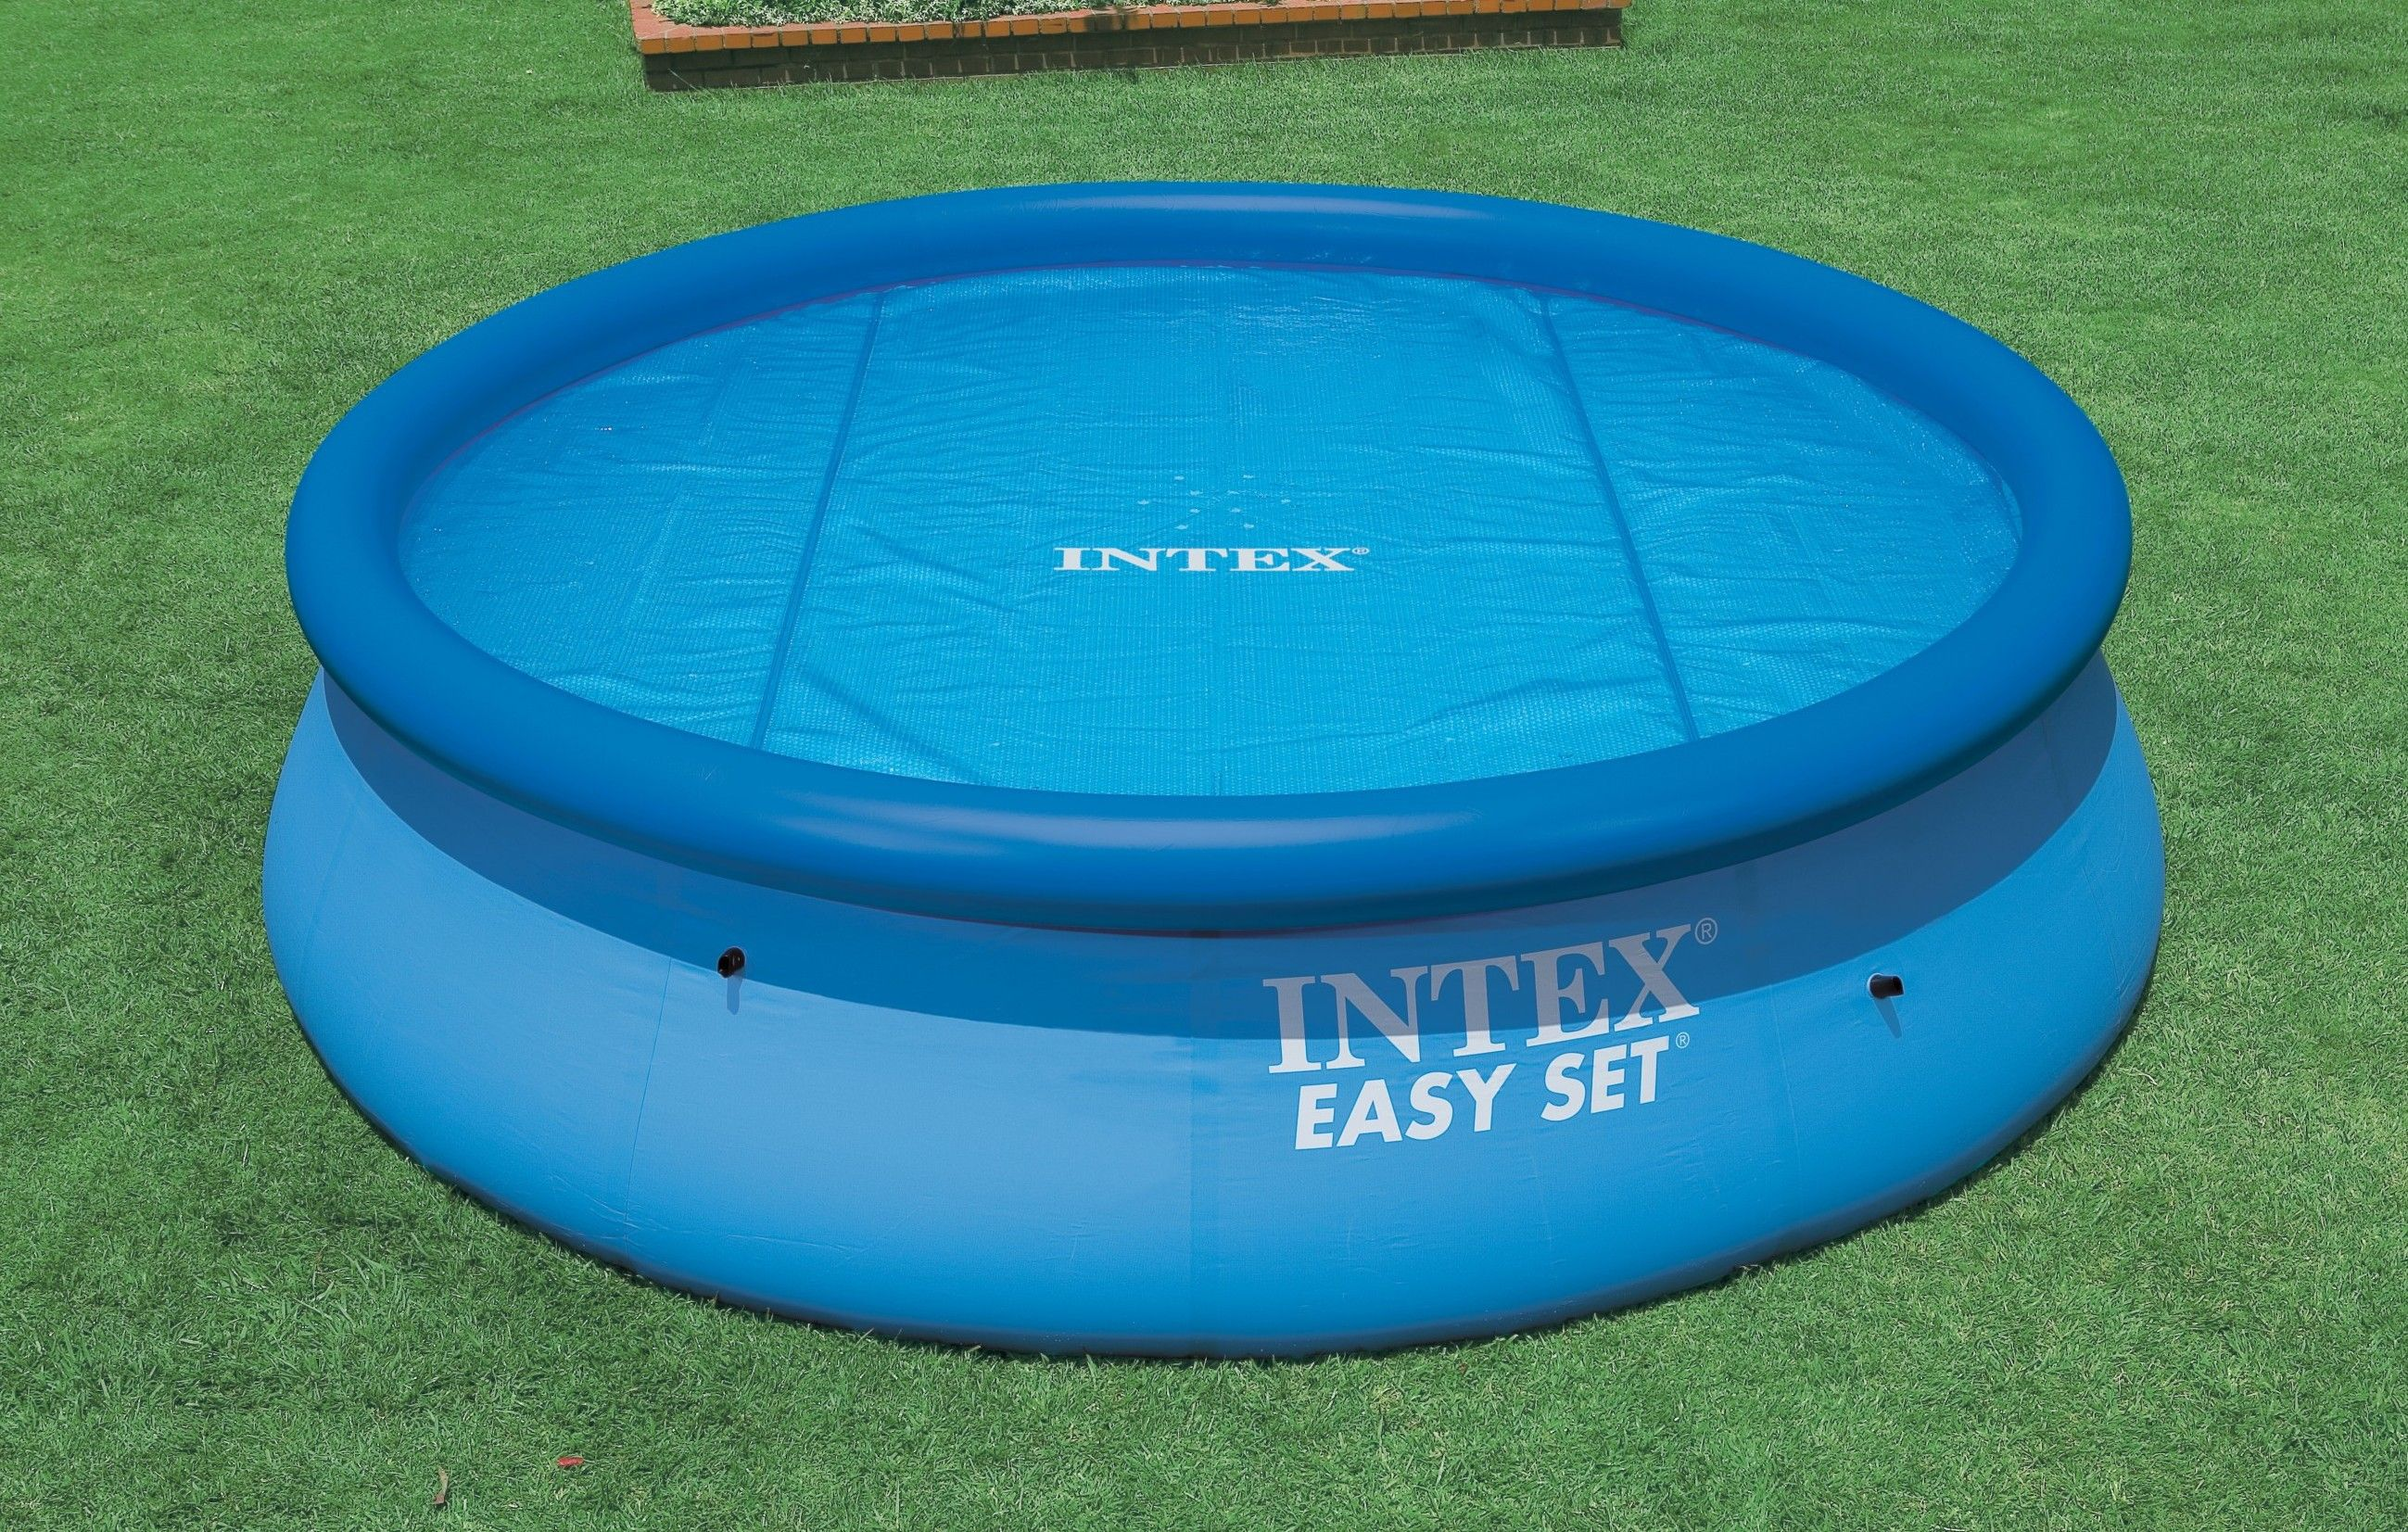 Intex pool poolfolie ersatzfolie f r intex easy frame for Pool ersatzfolie rund